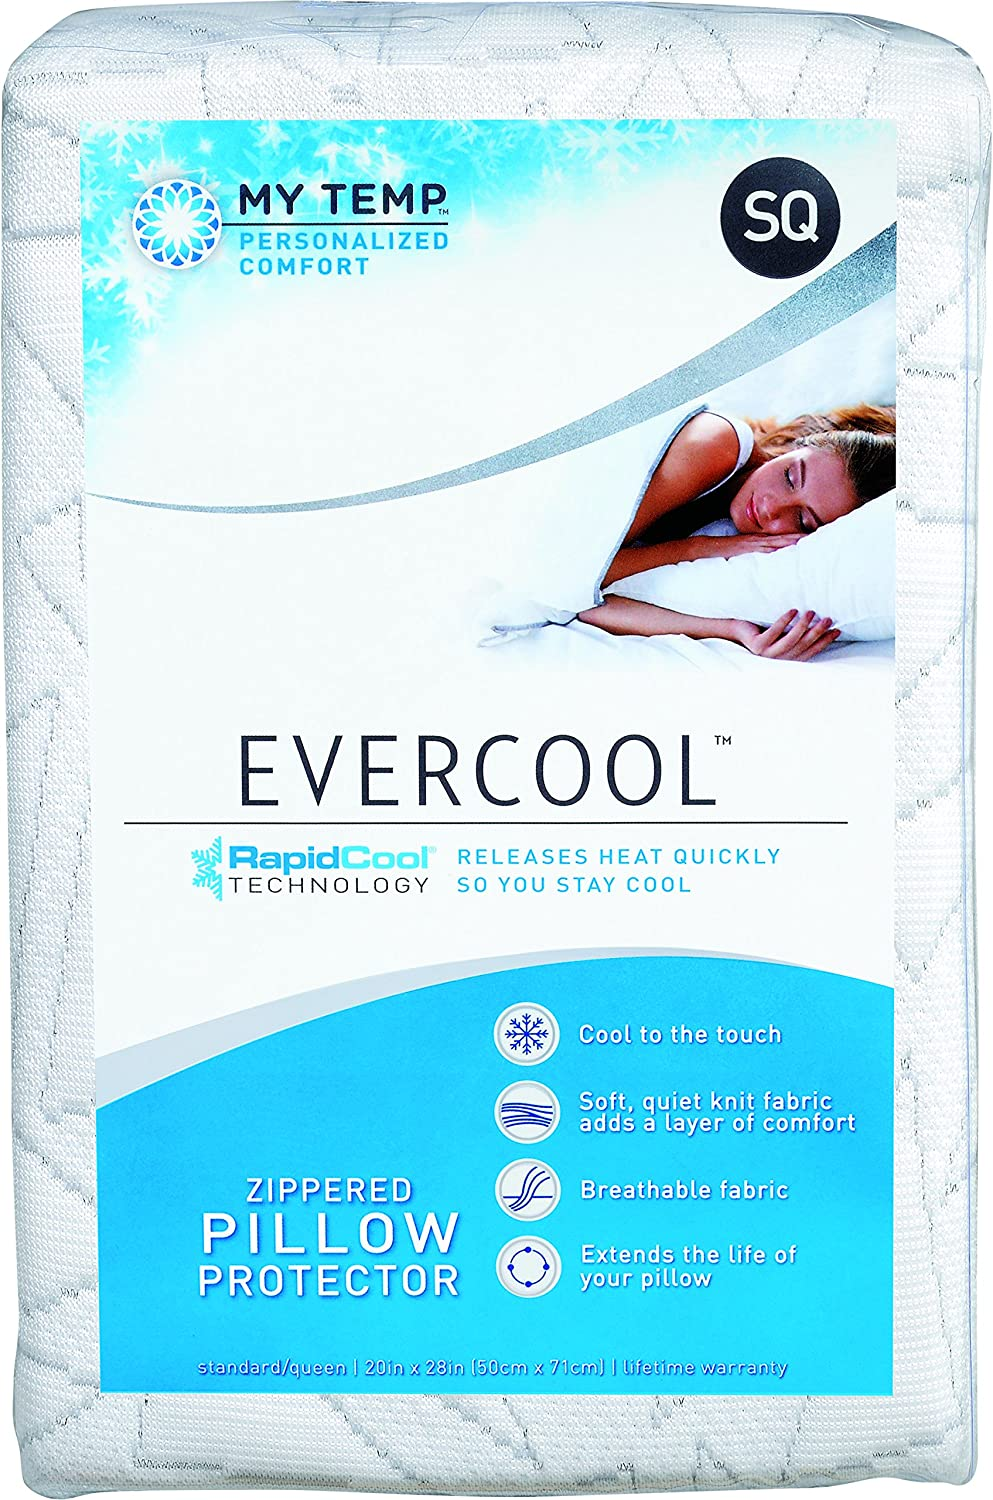 """My Temp Evercool Cooling Pillow Protector – Soft RapidCool Fiber is Cool to the Touch and Releases Heat, Extends the Life of Your Pillow, Machine Washable – Standard/Queen 20""""x28"""", Cracked Ice Pattern"""